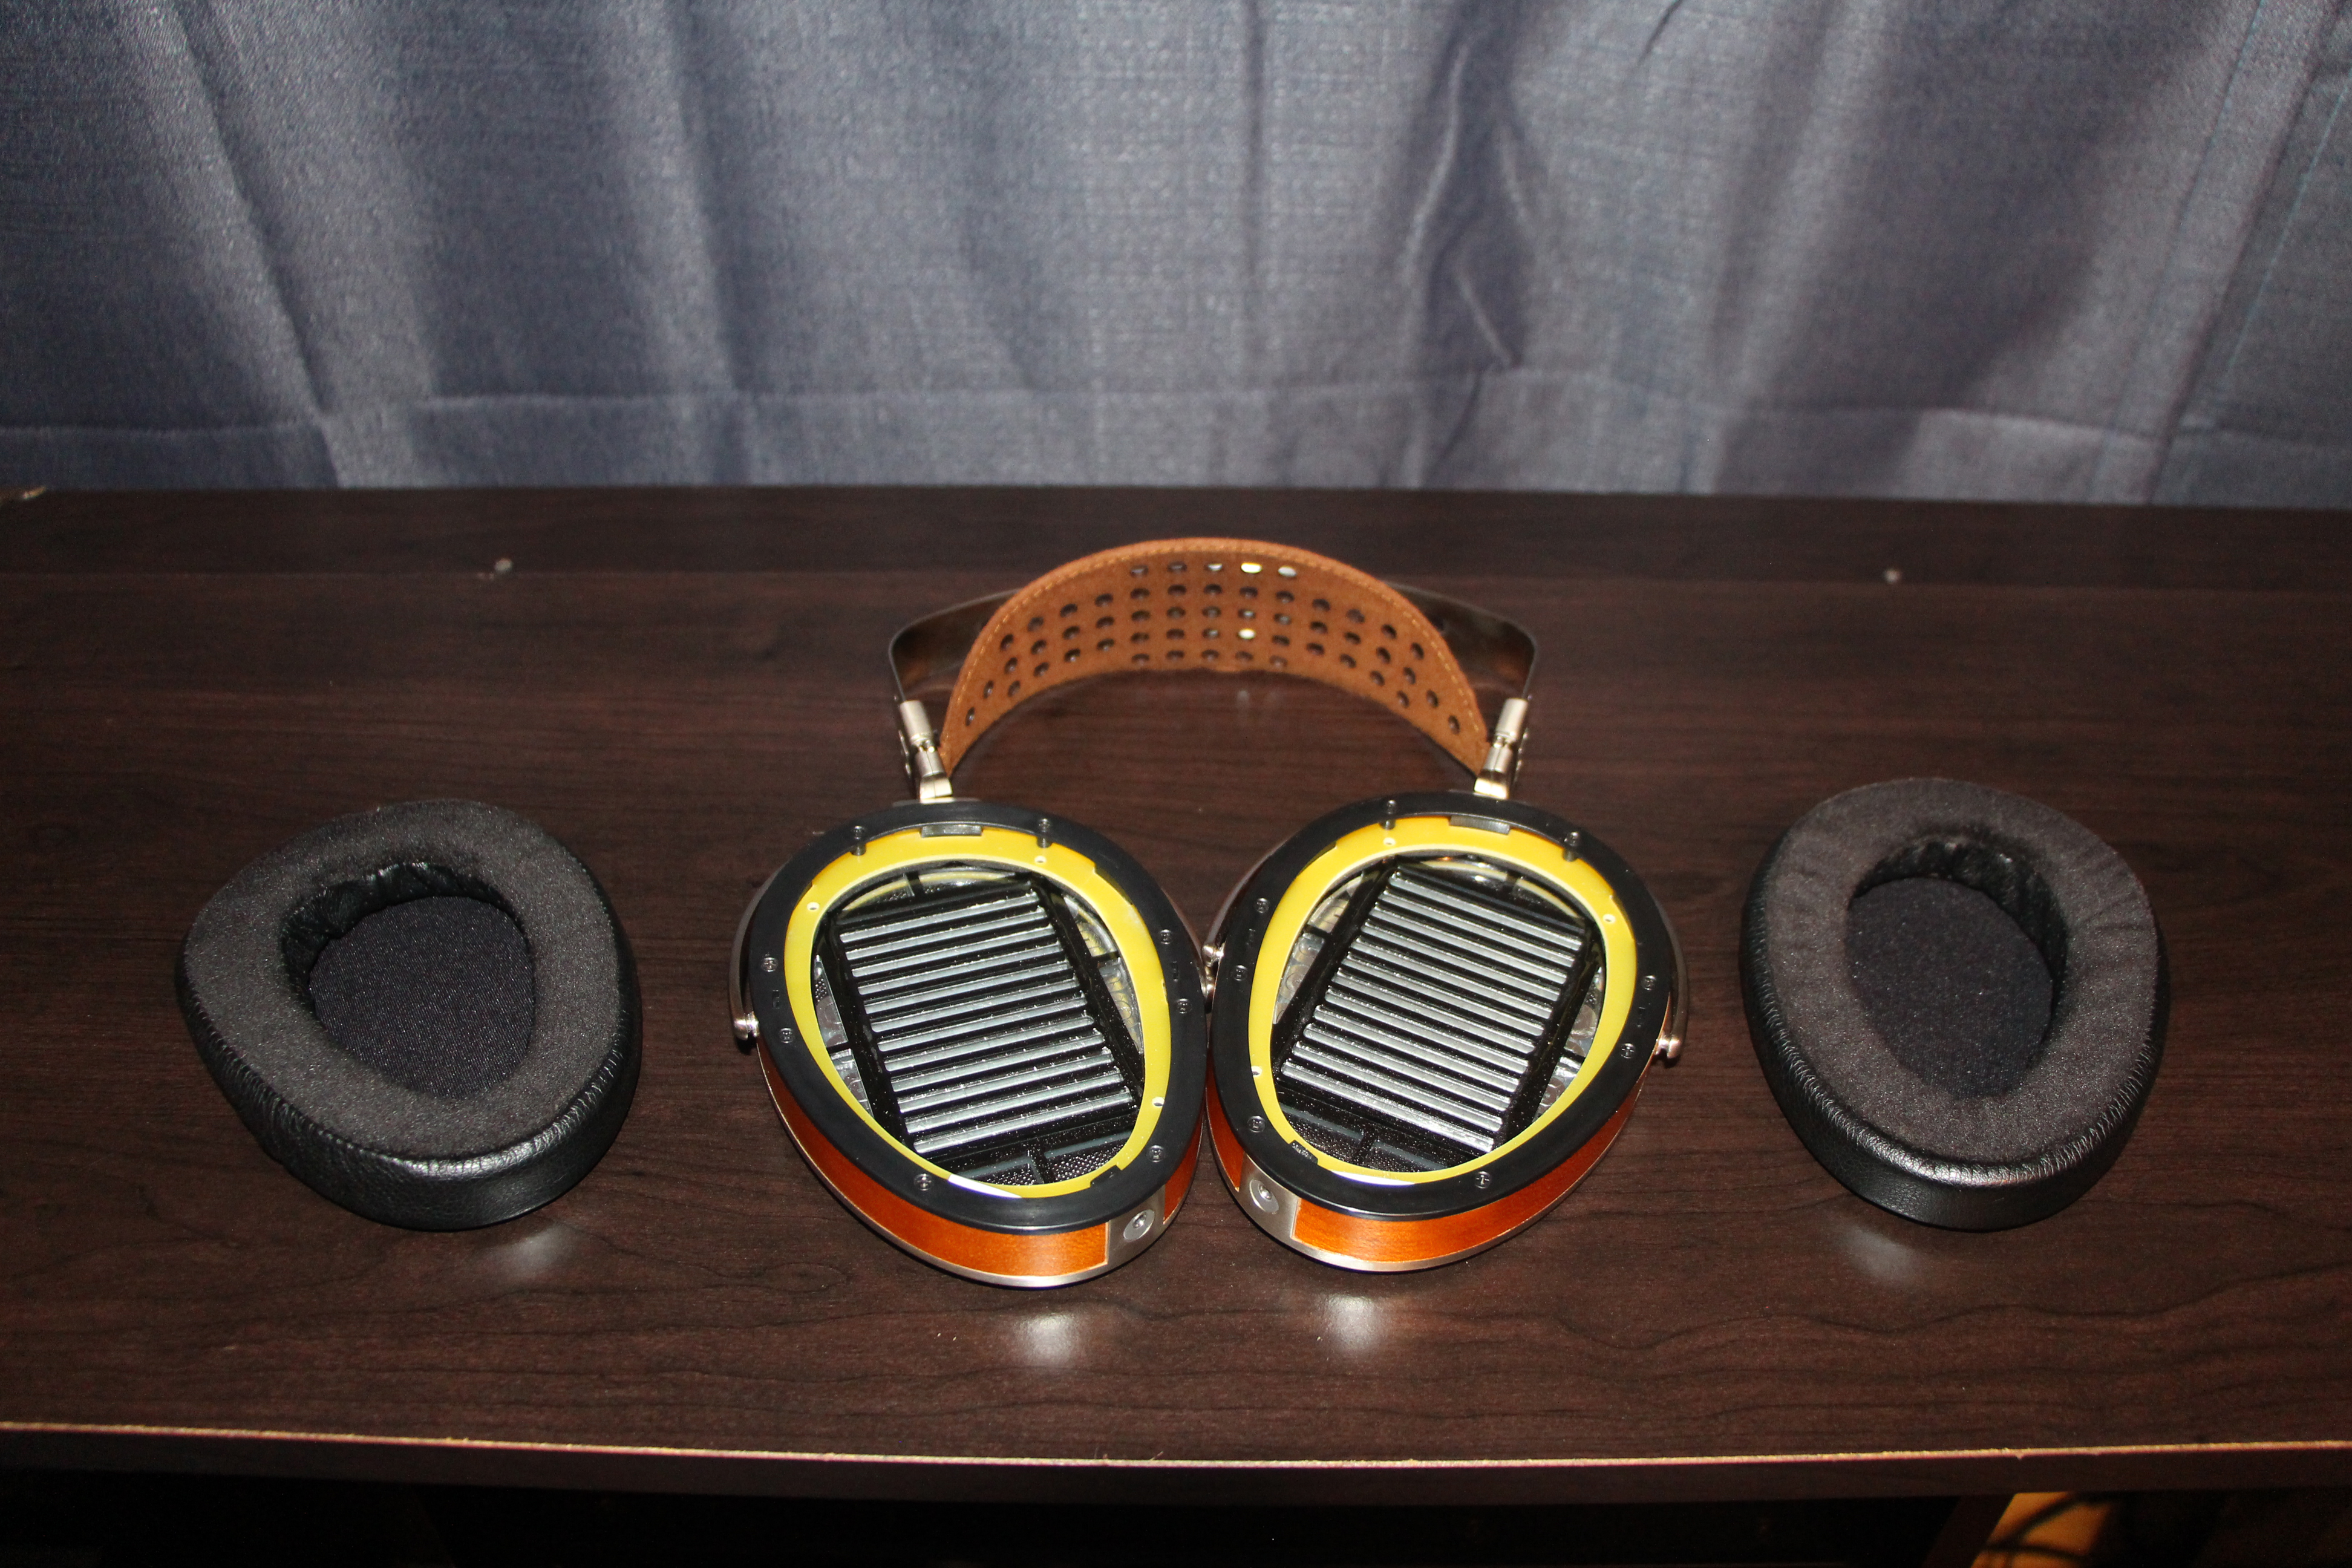 Totl Headphones Comparison Headphone Reviews And Discussion Head Nad 3150 Solid State Amplifier Img 3469